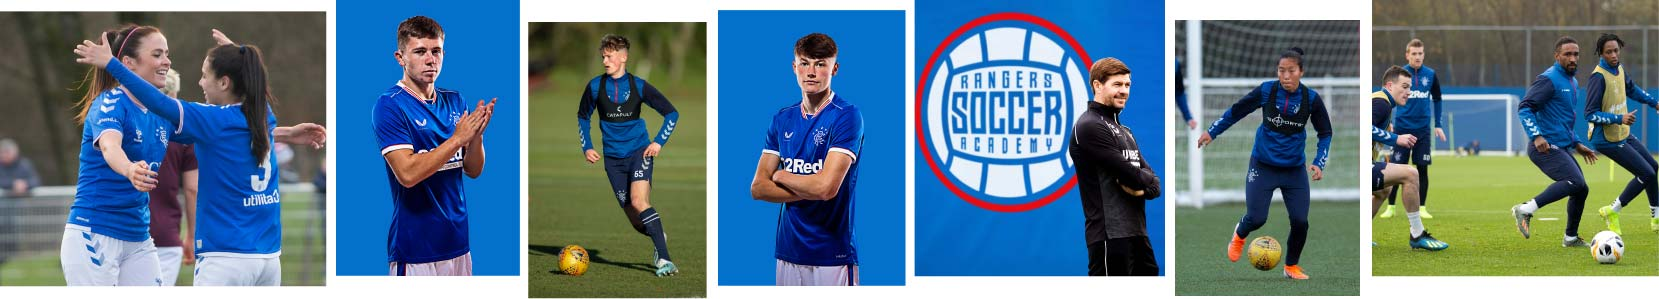 Collage of Rangers players and coaches